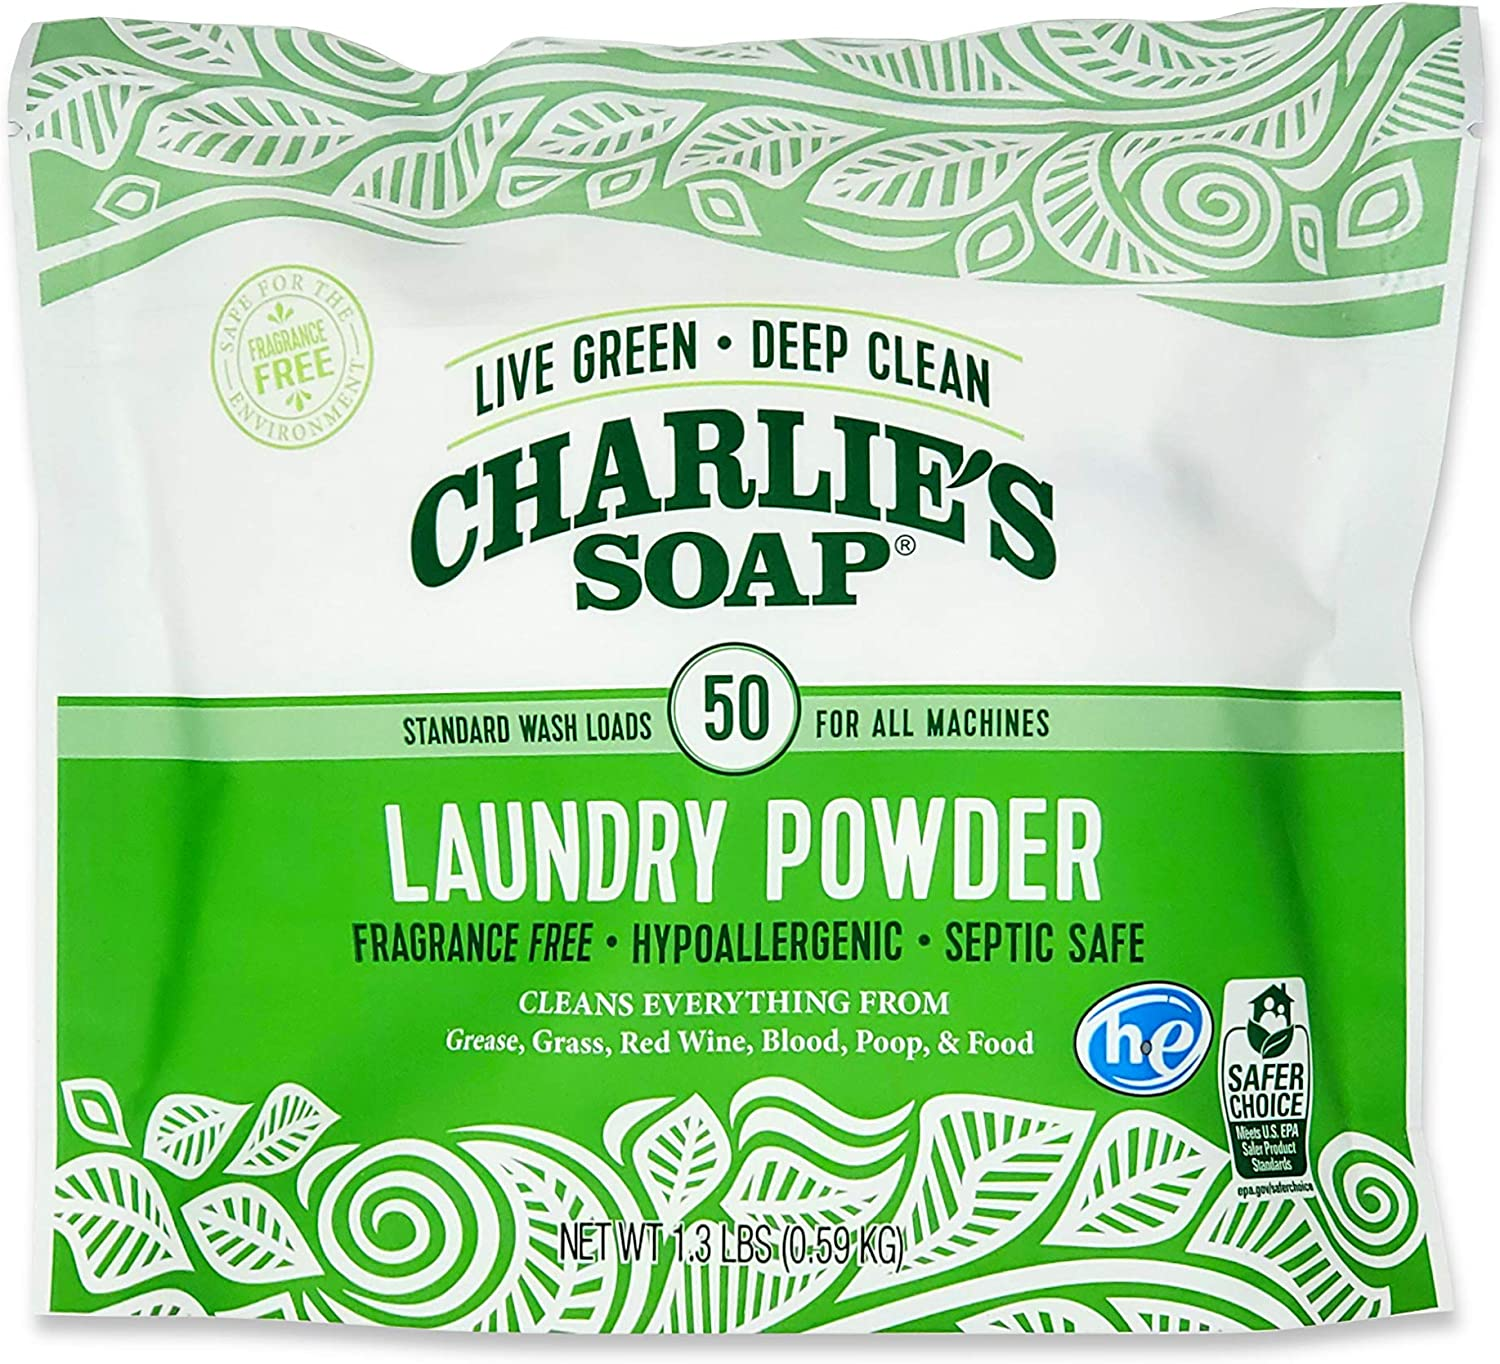 Charlie's Soap Laundry Powder (50 Loads, 1 Pack) Hypoallergenic Deep Cleaning Washing Powder Detergent – Eco-Friendly, Safe, and Effective